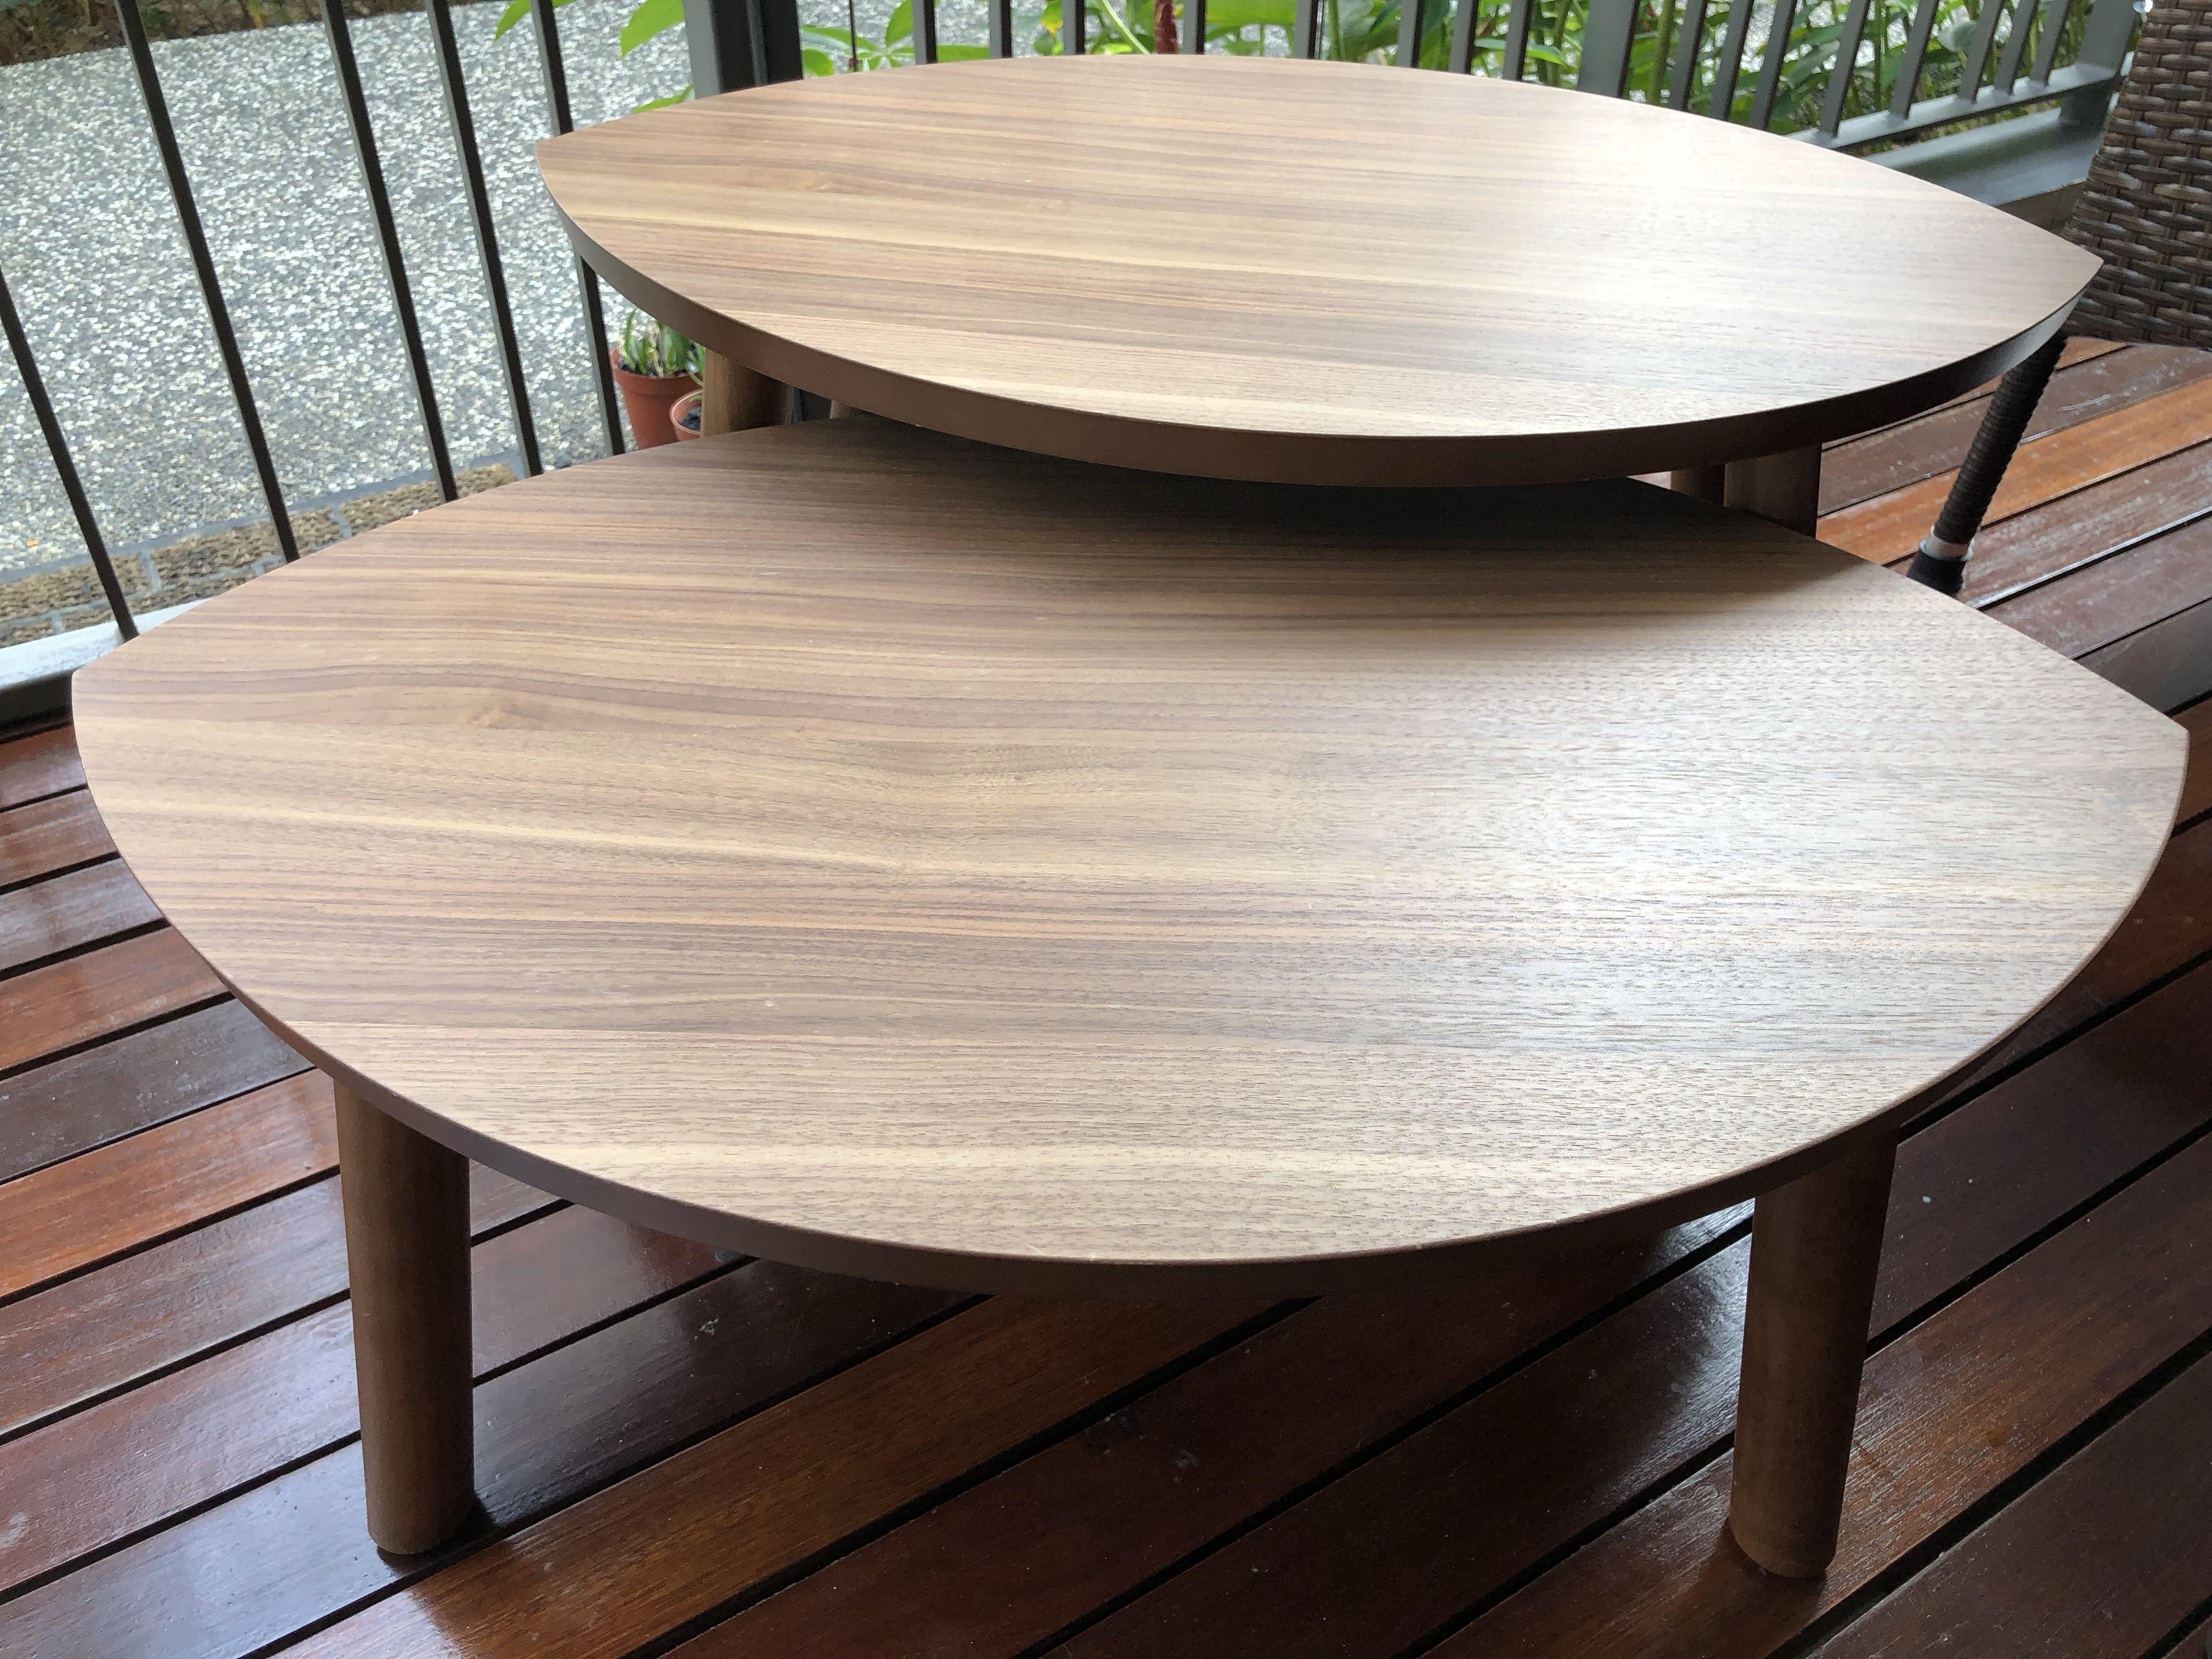 Ikea Stockholm Coffee Table Set Furniture Home Living Furniture Tables Sets On Carousell [ 3024 x 4032 Pixel ]